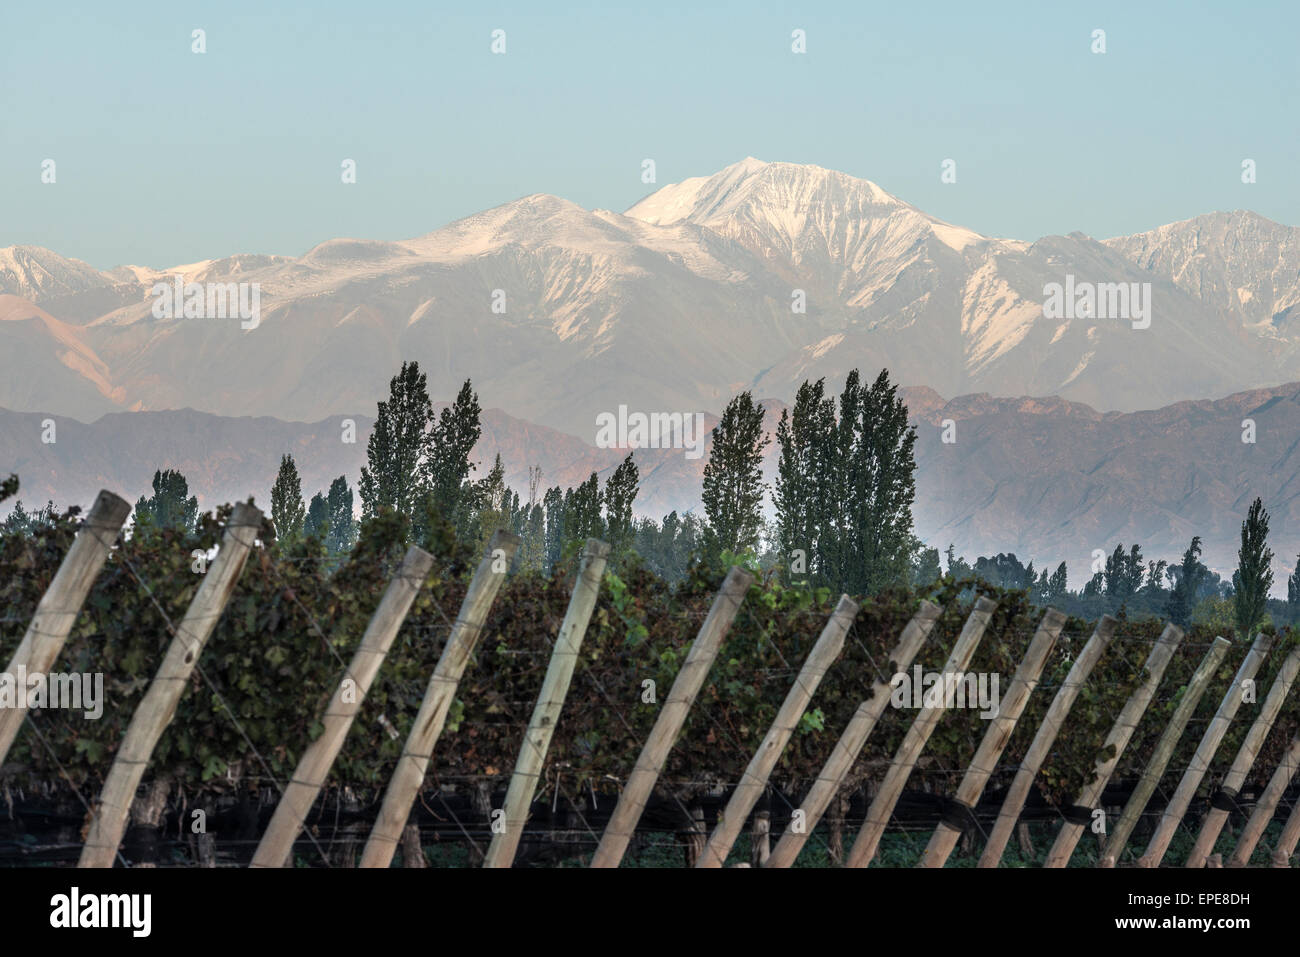 Early morning in the vineyards in Maipu, Argentine province of Mendoza - Stock Image